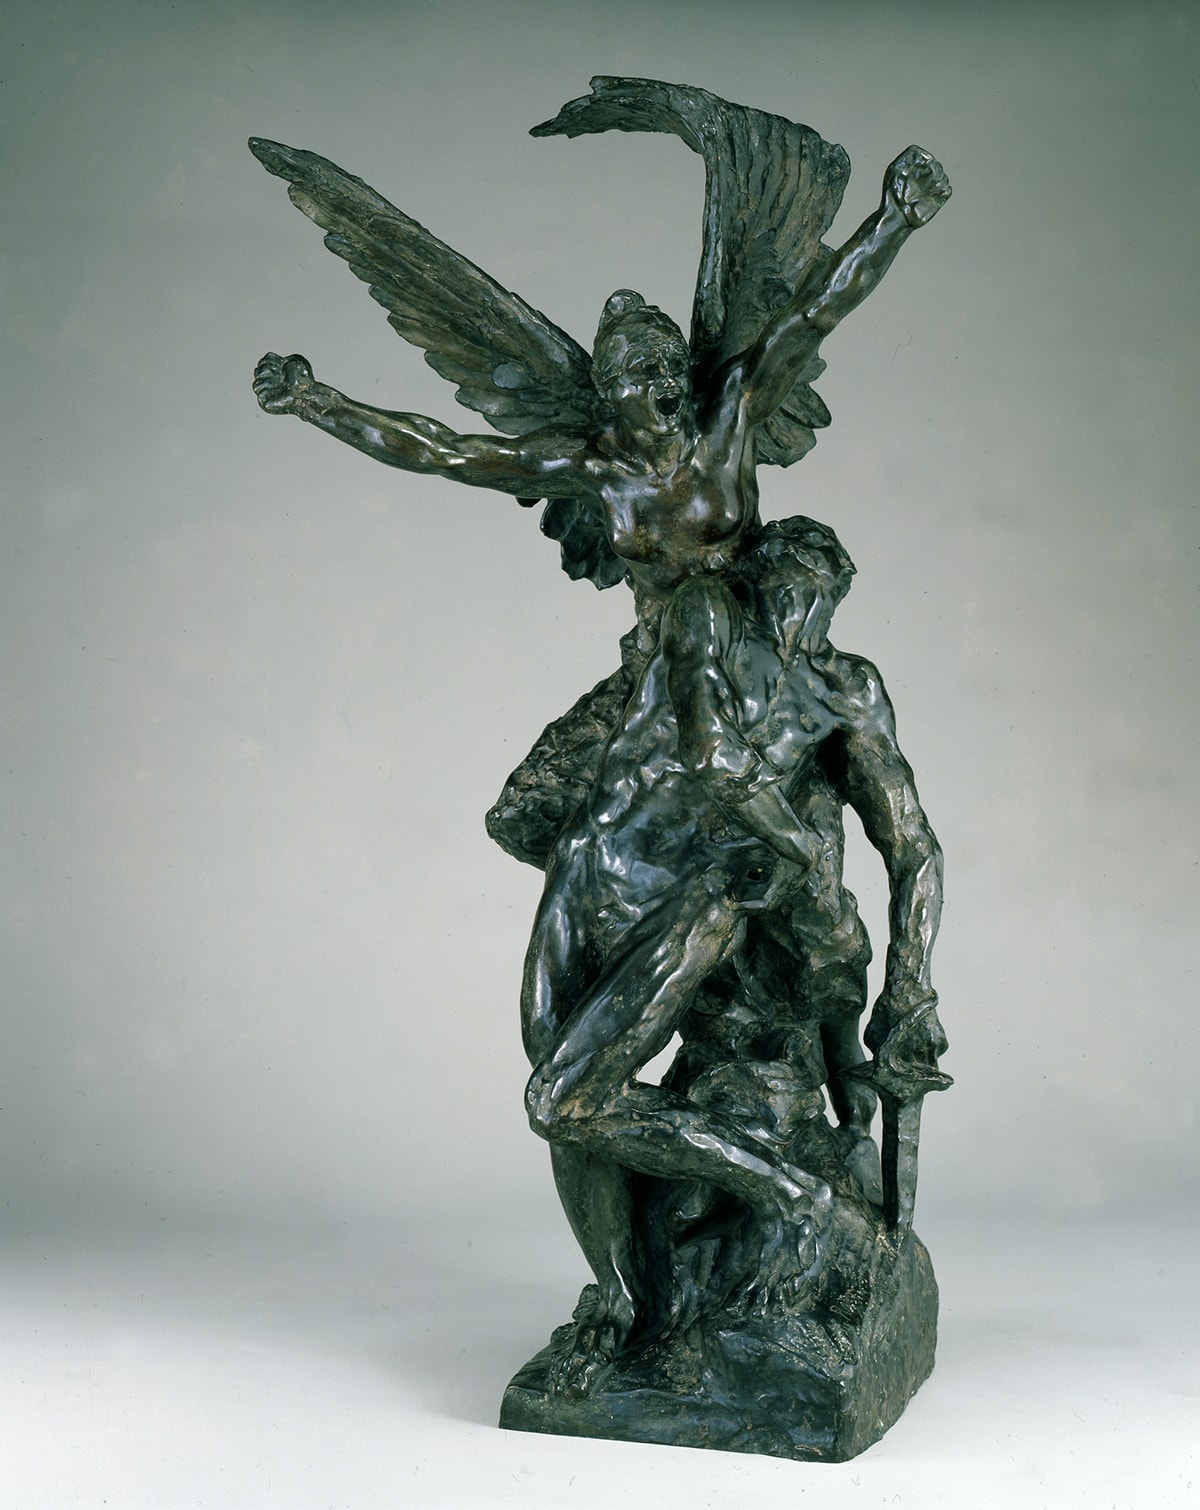 A photograph of a bronze sculpture showing two figures: the feminine presenting Spirit of Liberty and a masculine presenting combatant. The Liberty figure is positioned over the combatant. She is bare breasted with muscular arms raised in a V and fists tightly clenched. Her mouth is open wide as if shouting. She has a large pair of wings that rise behind her echoing the V of the arms. One wing is visibly broken and bent back on itself. The combatant is posed just beneath Liberty, and he looks up to her as if responding to her call. His nude body is set at a diagonal to Liberty's with his head thrown back to the right, and his torso, hips and legs crossing diagonally to the left of Liberty. The leg at right is bent at the knee creating another angle. The arm at left lies across his body with his hand resting at right. His other arm is extended downward and he holds a sword that is inserted in the rocky base. He uses the sword to support his weak body as he tries to rise up toward Liberty. The sculpture is highly varied in its textured, displaying muscles, feathers, smooth skin and rock. The bronze is dark, almost black in some places with brownish highlights.